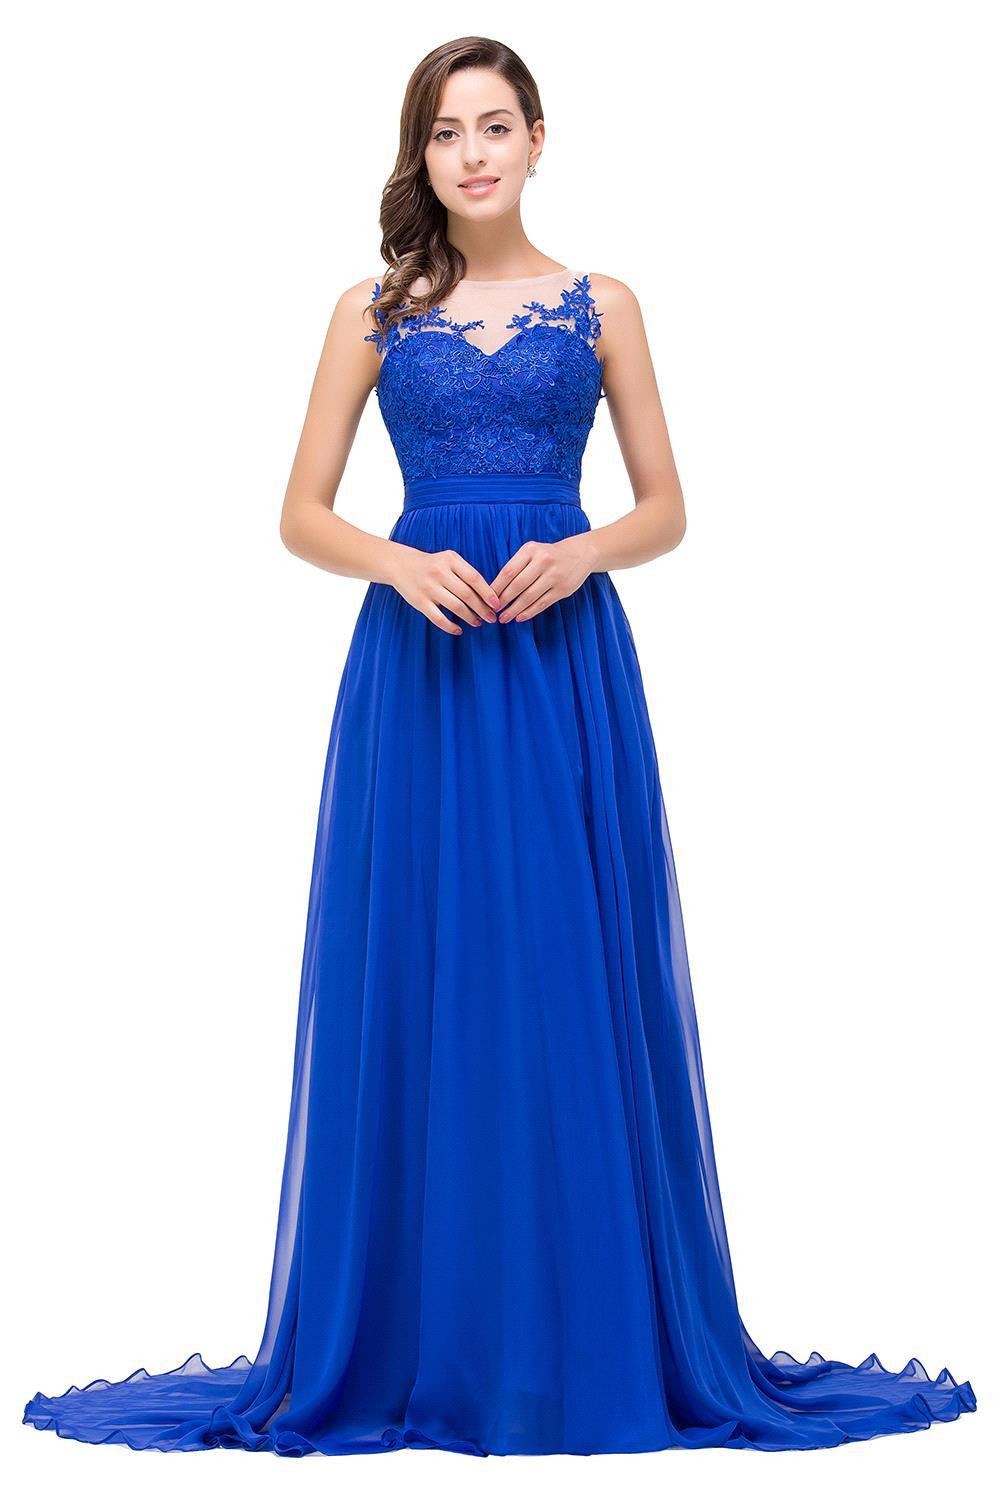 A line Slit Royal Blue Prom Dress - daisystyledress